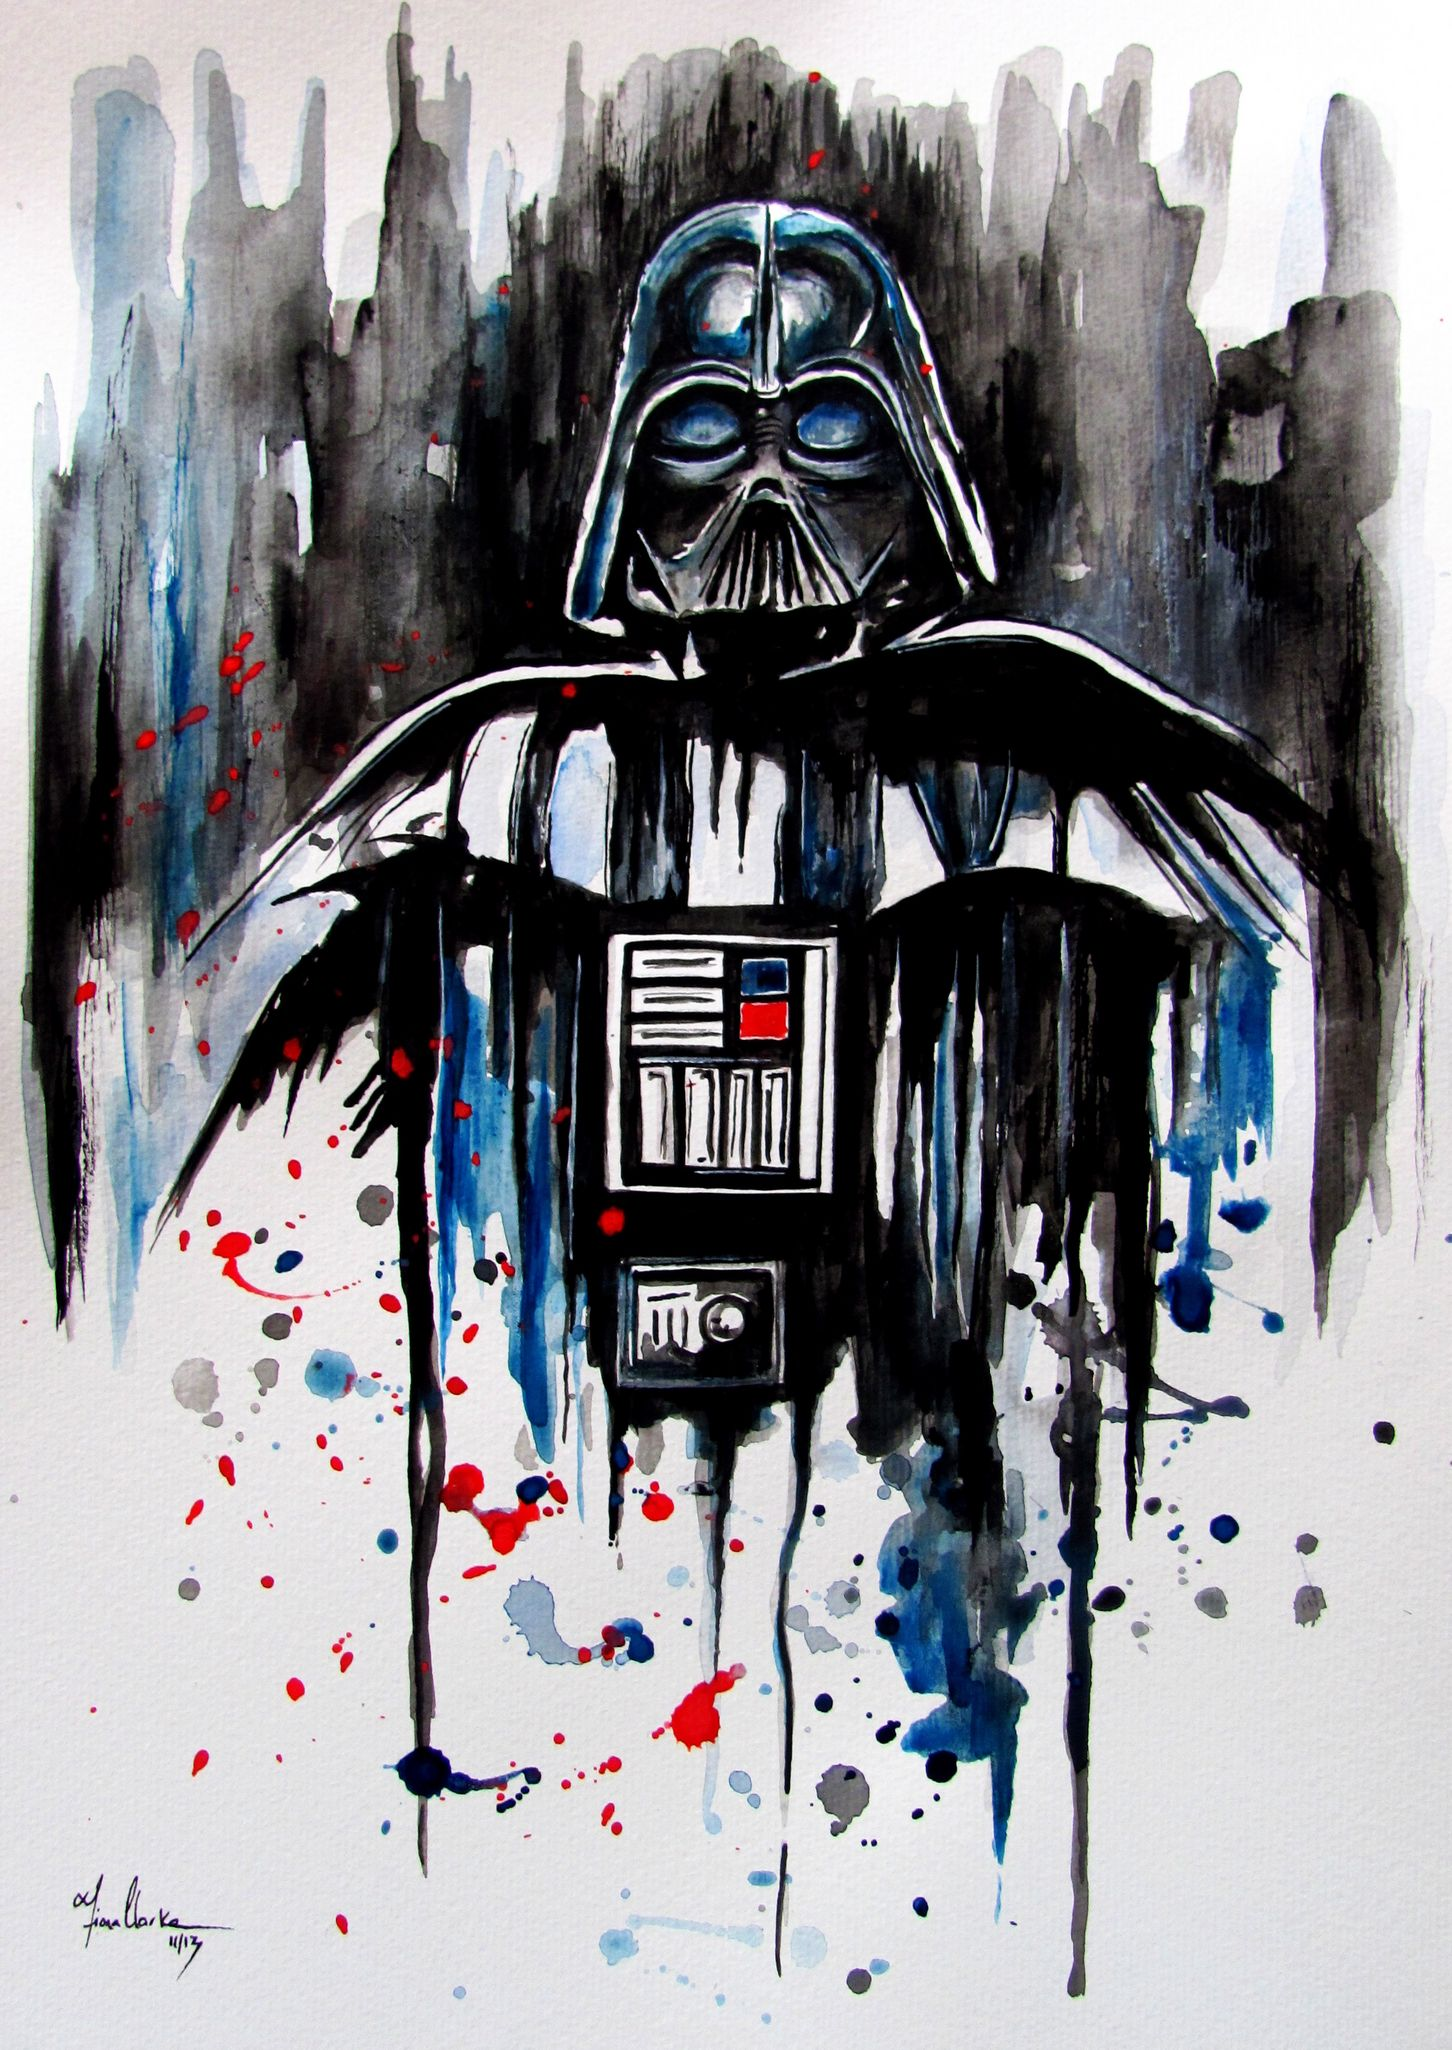 darth vader painting - Google Search | Painting Ideas ...